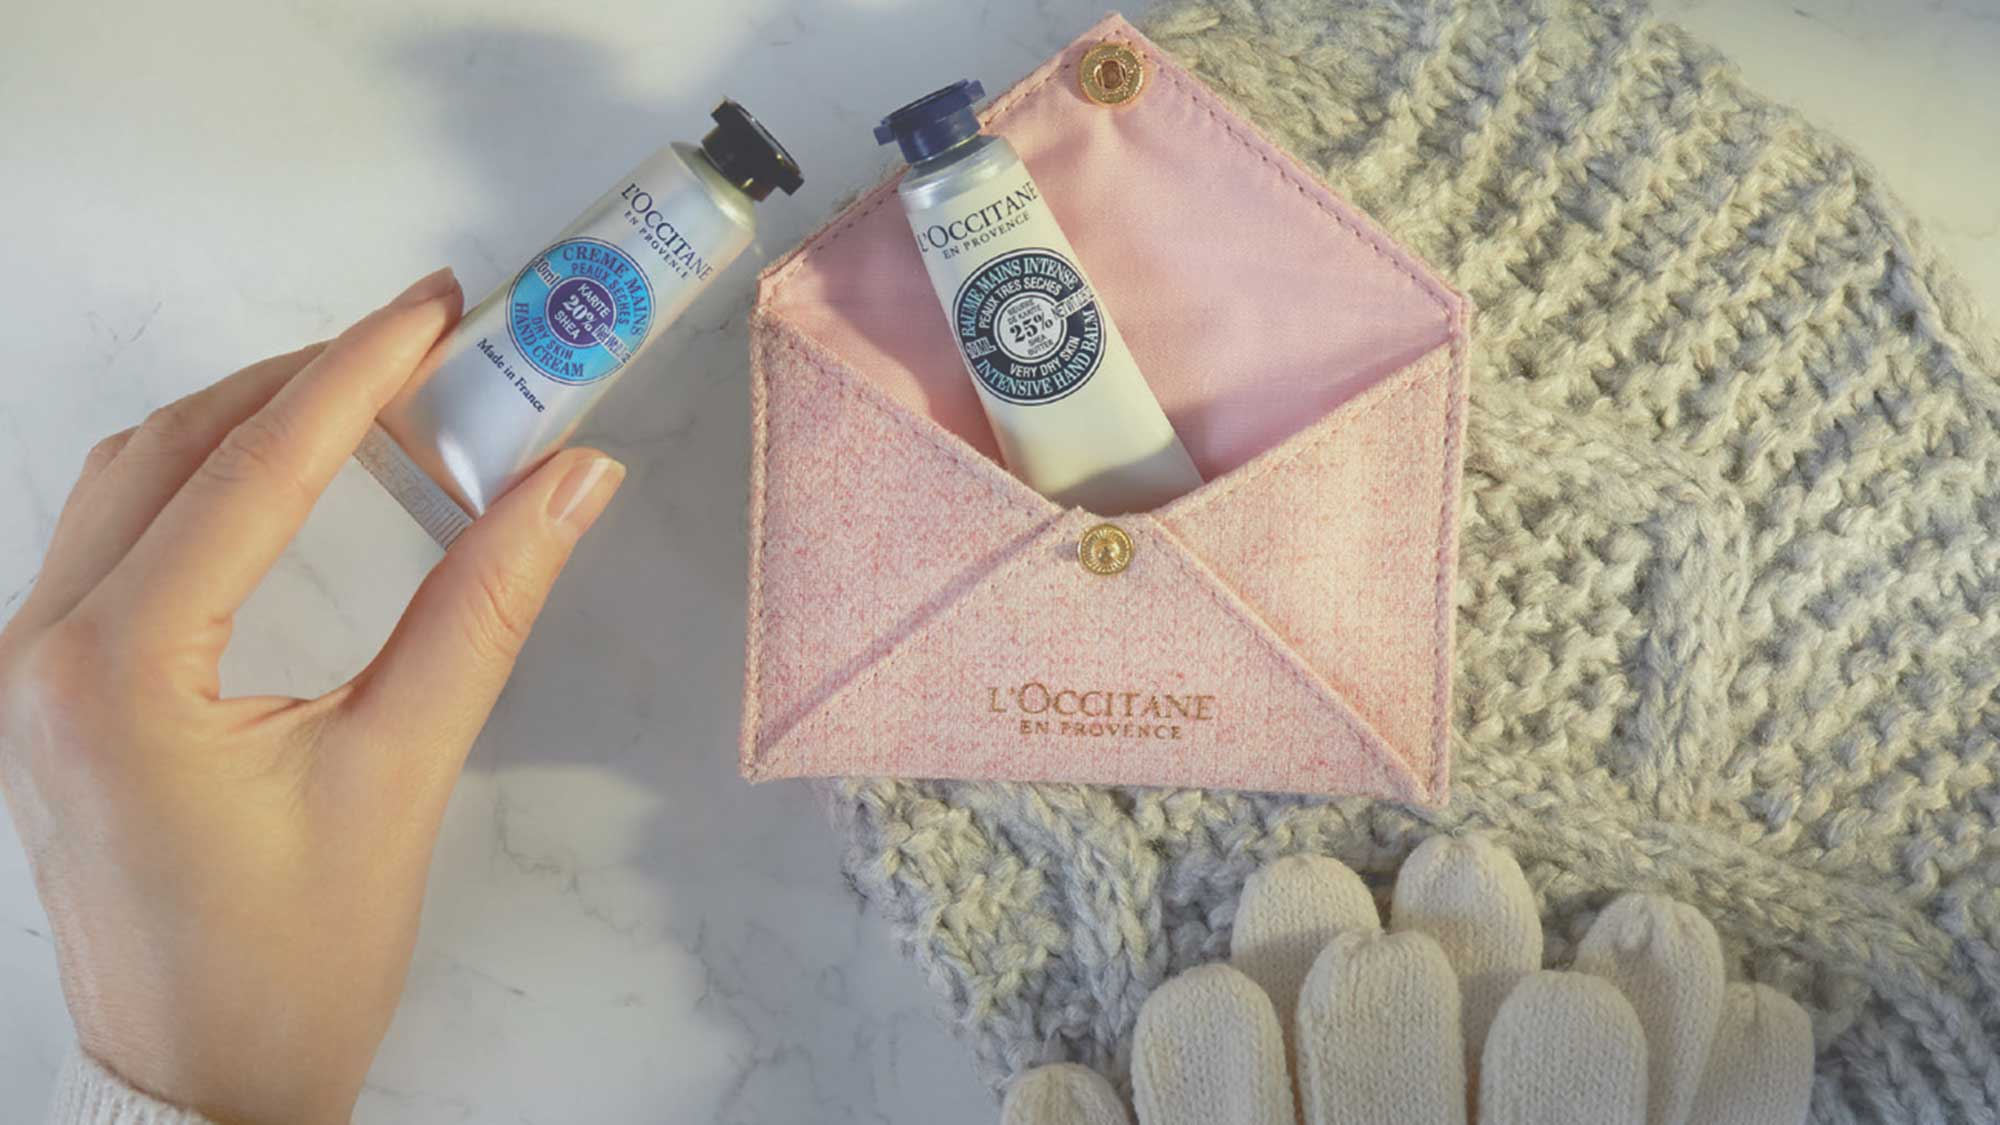 FREE L'Occitane handcare duo and soap just for you